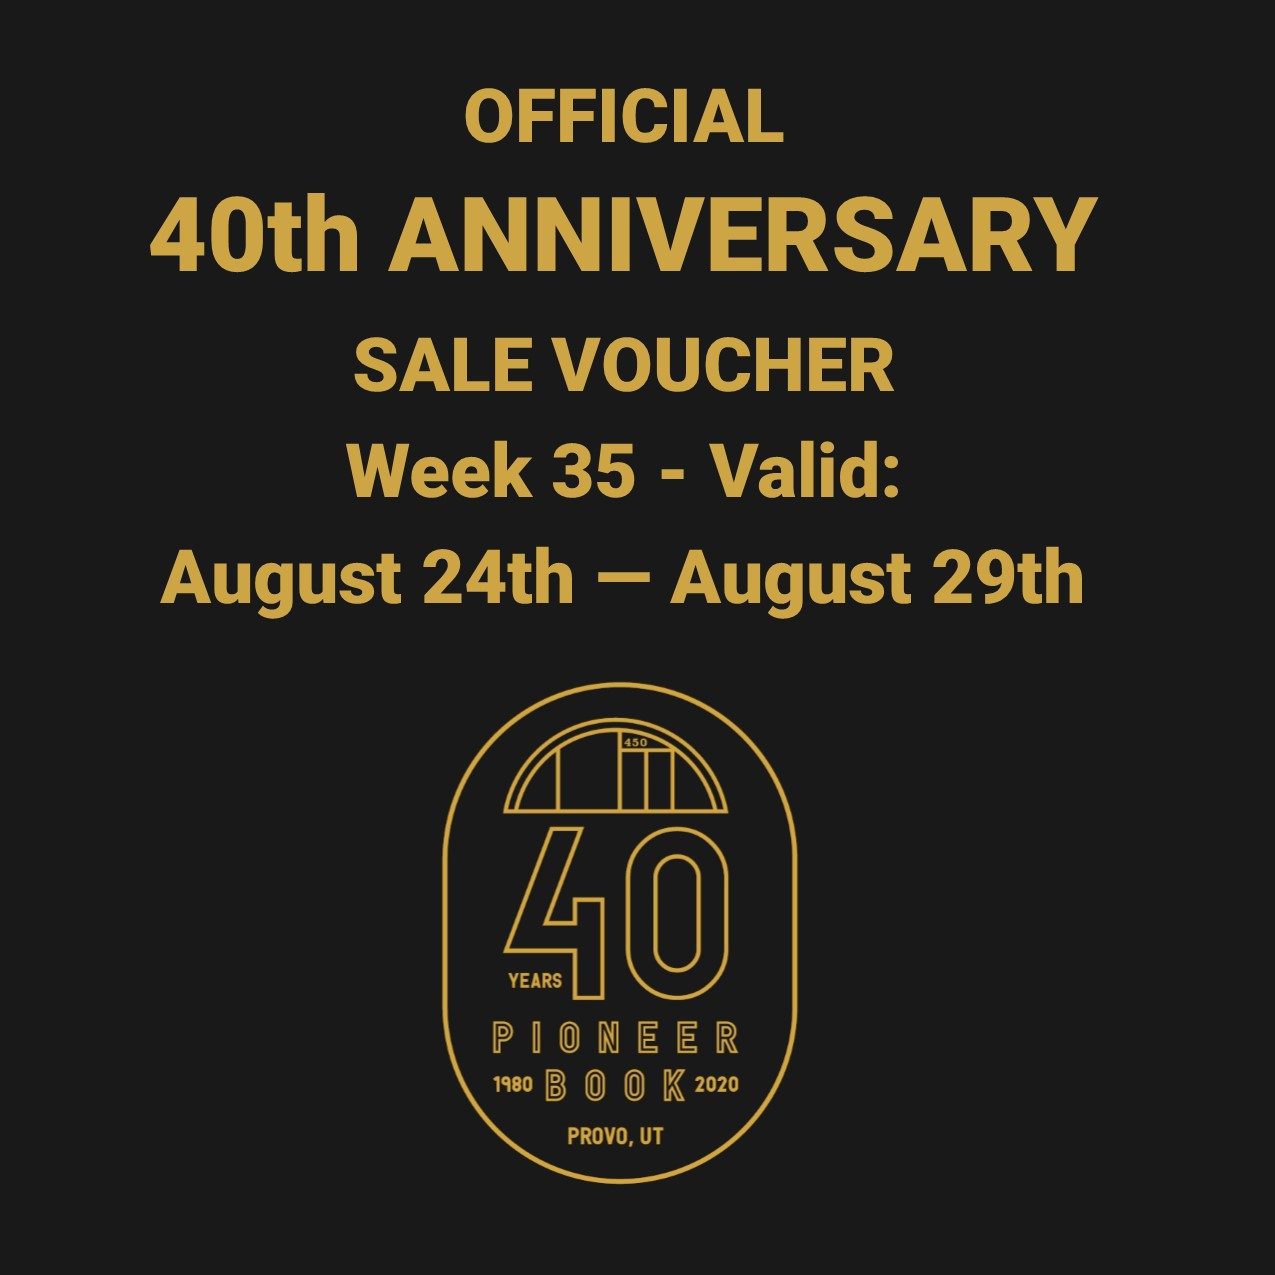 Image for 40th Anniversary Sale! Voucher - Week 35: August 24th - August 29th